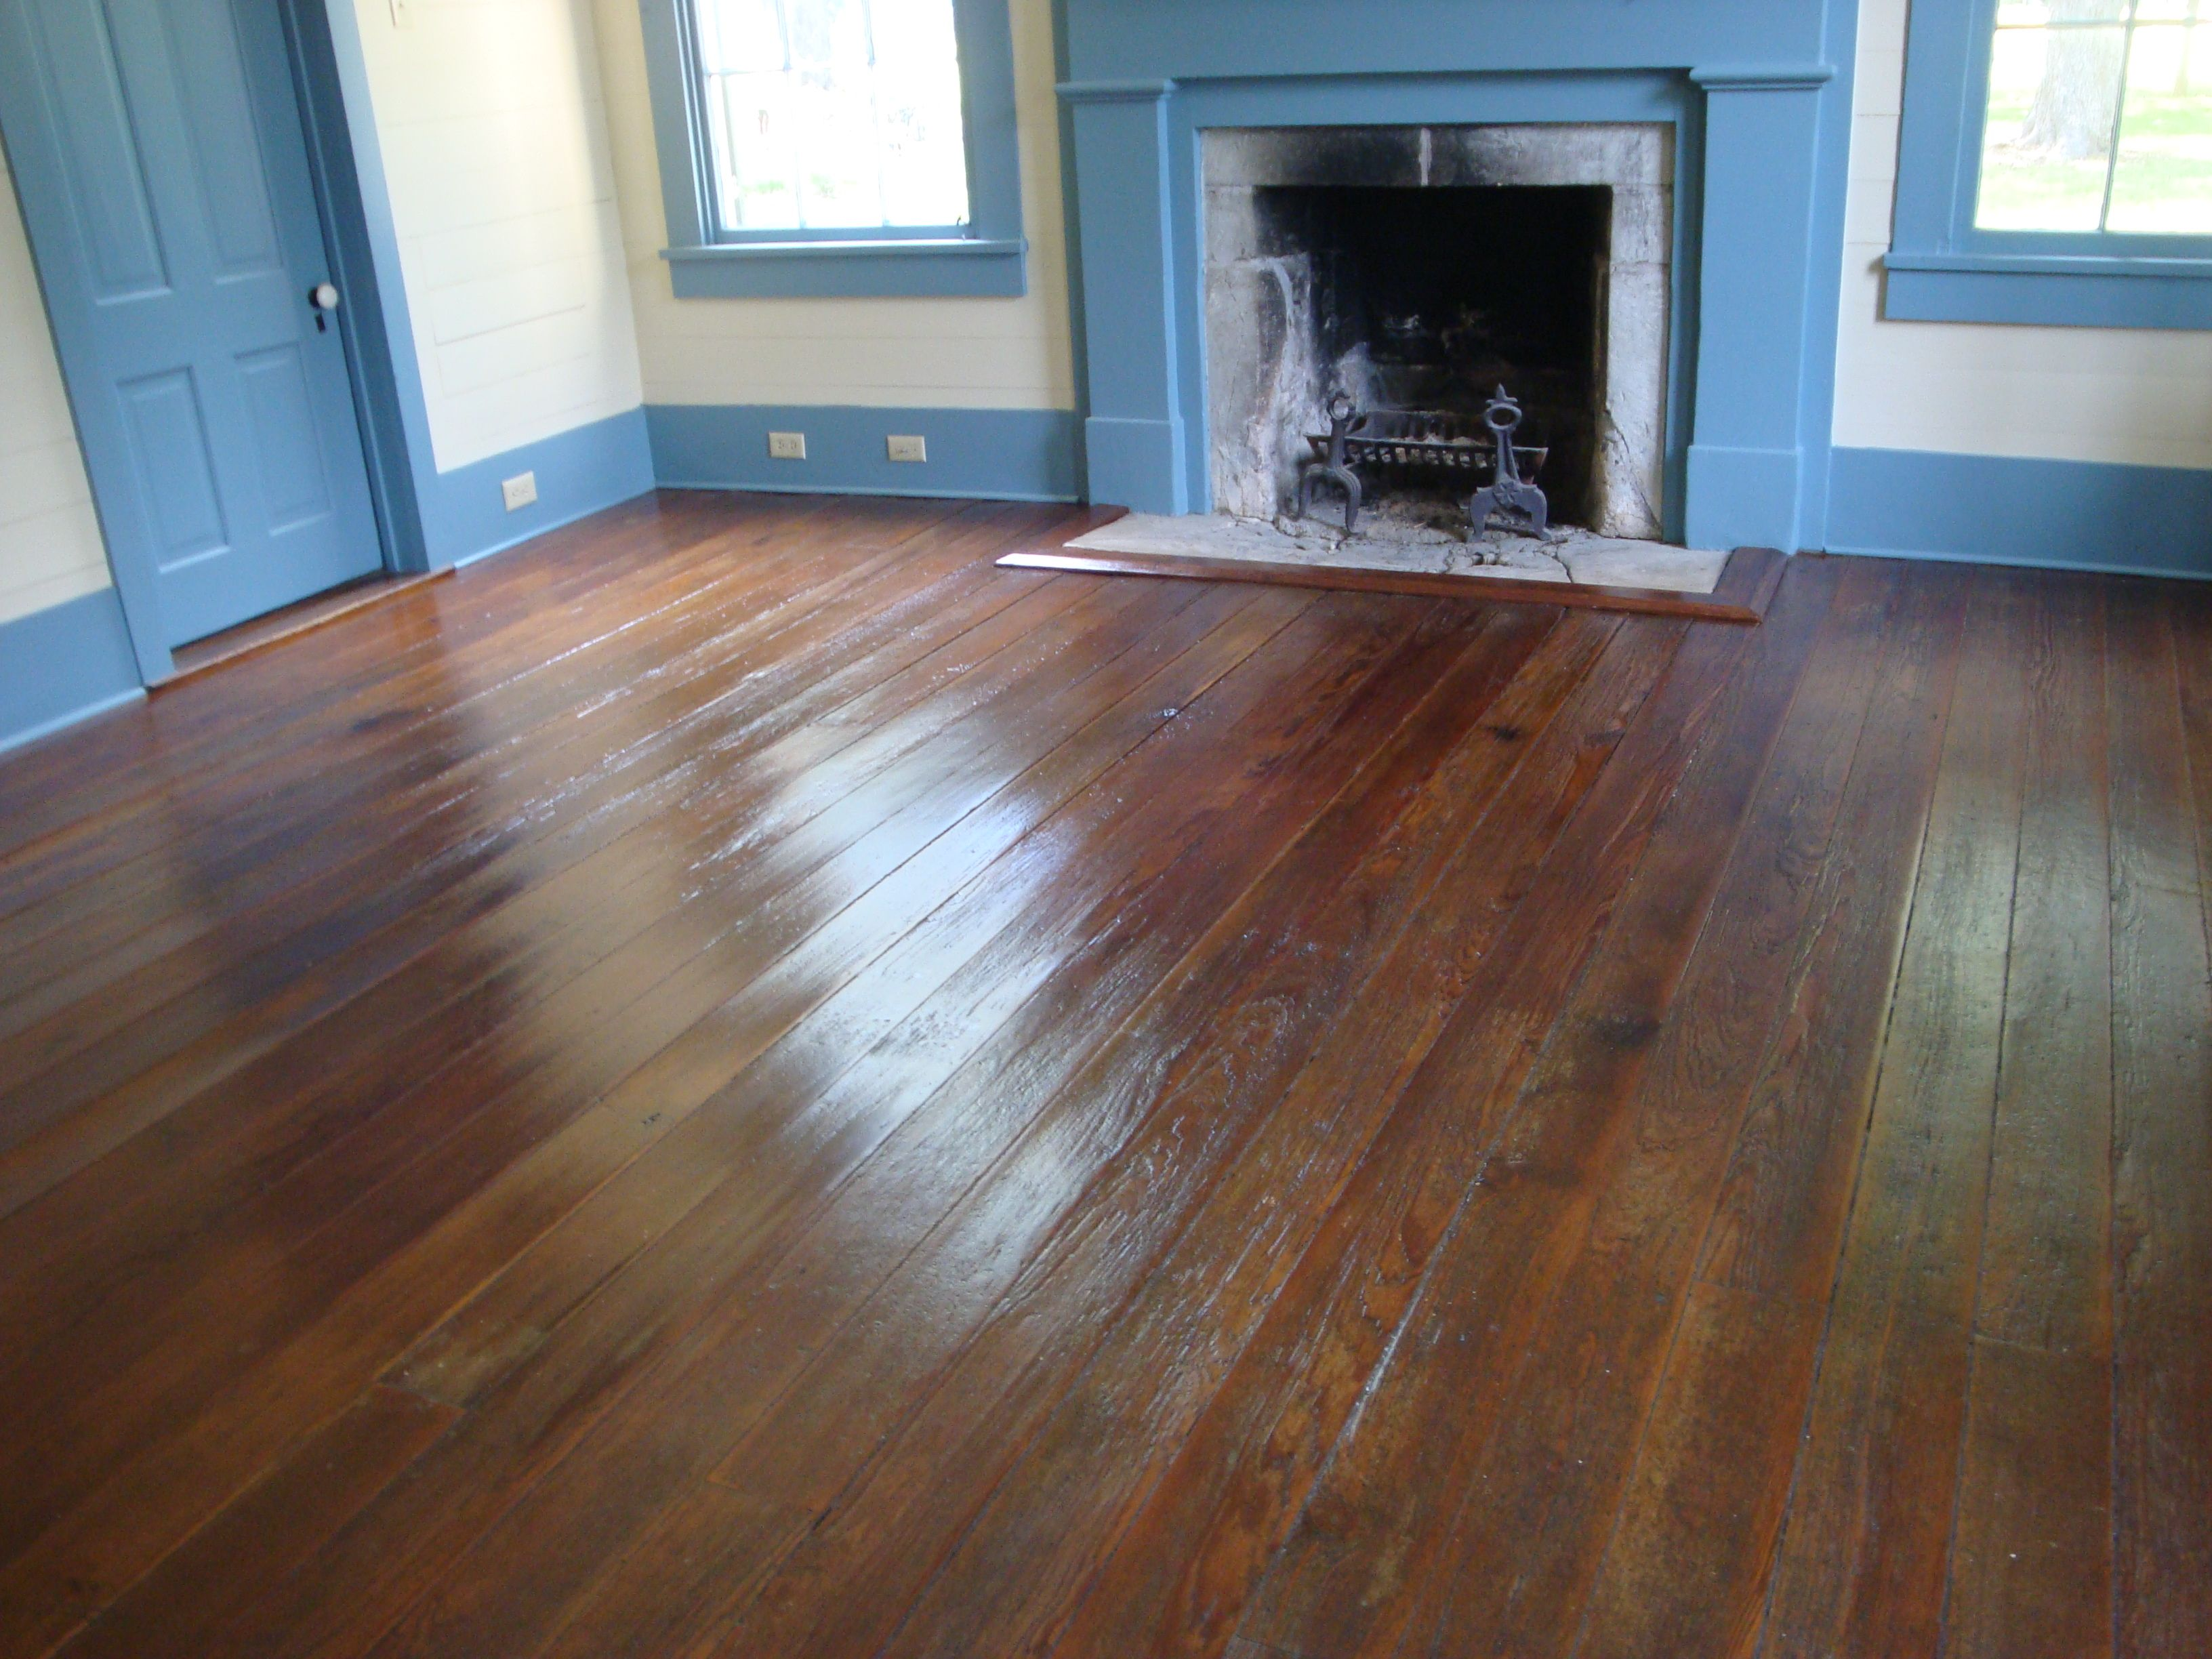 Pine Floors Refinished Without Sanding